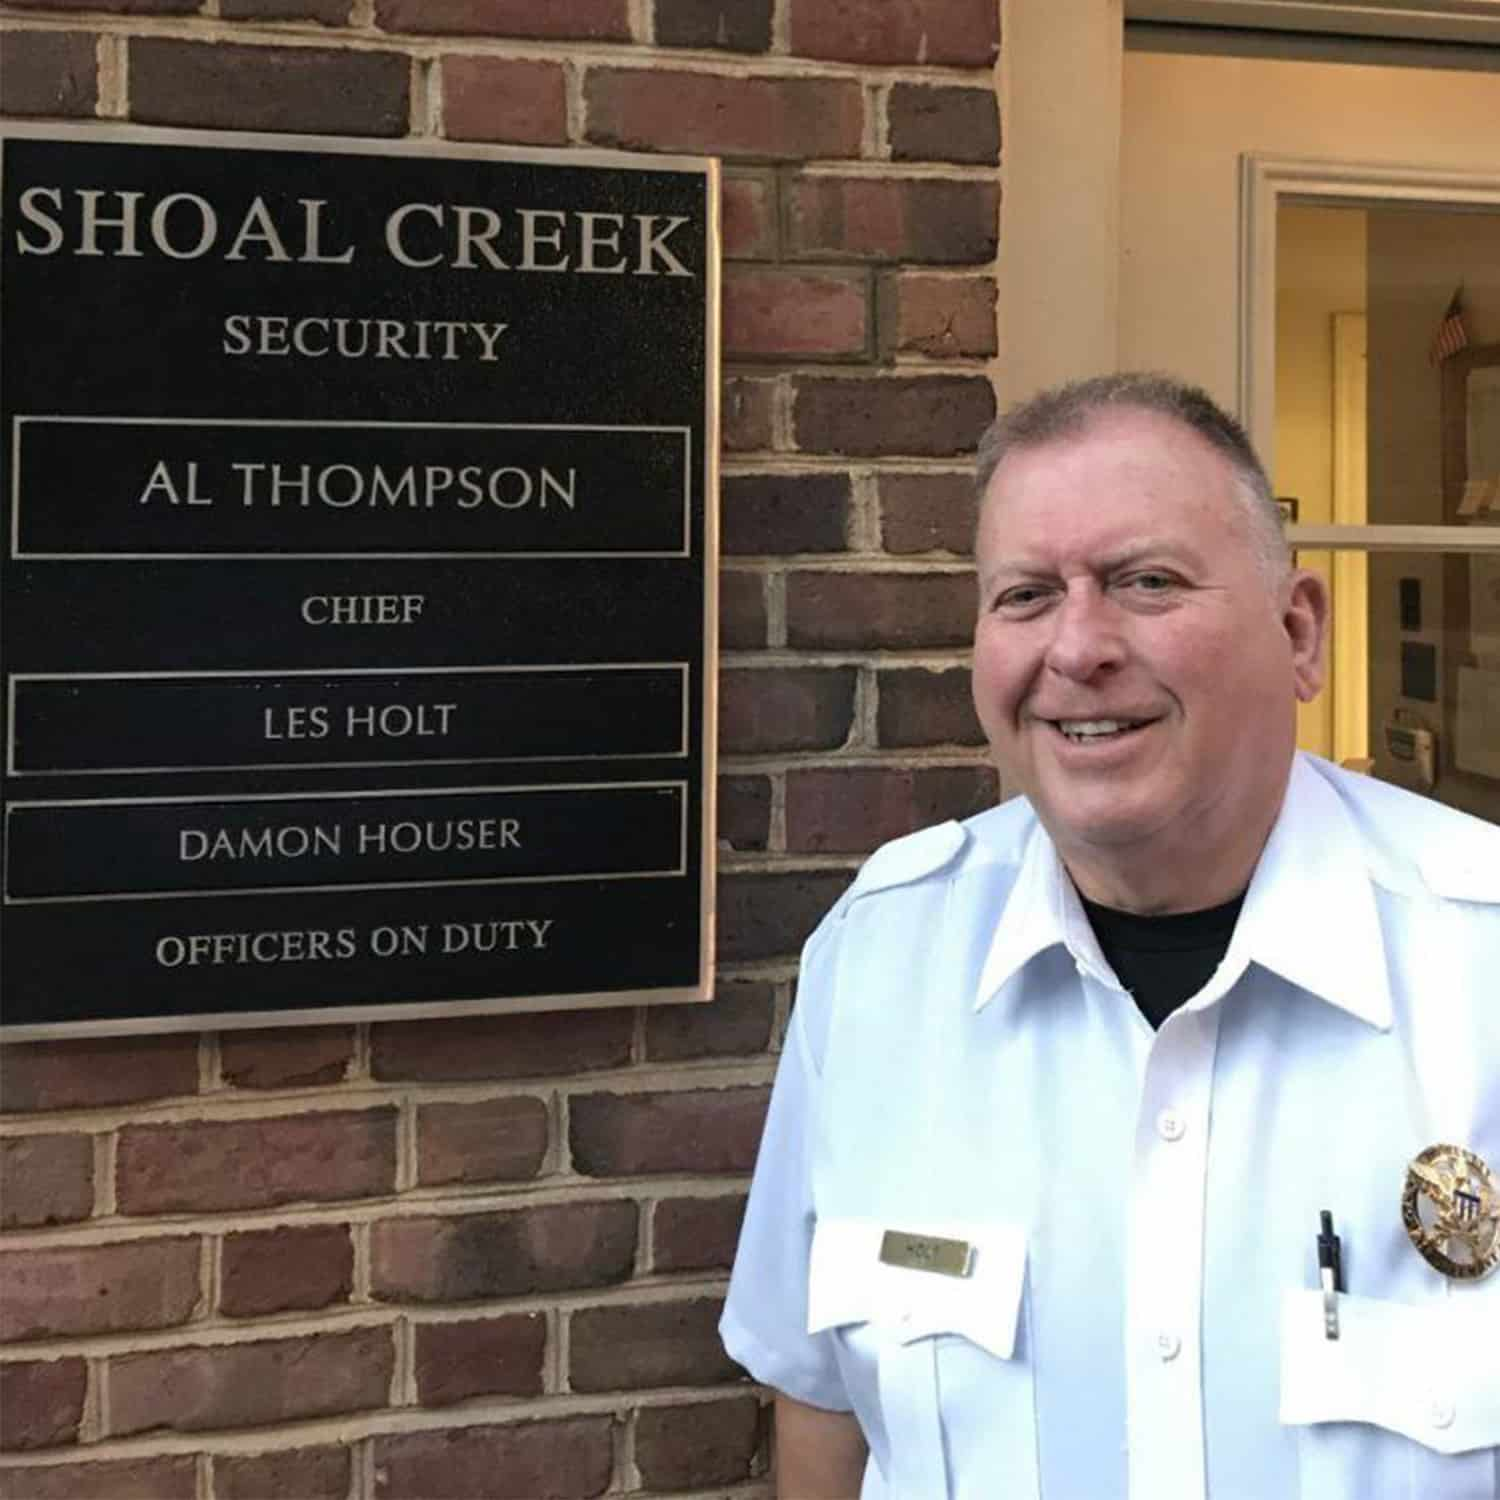 Shoal Creek Security Officer with on duty sign